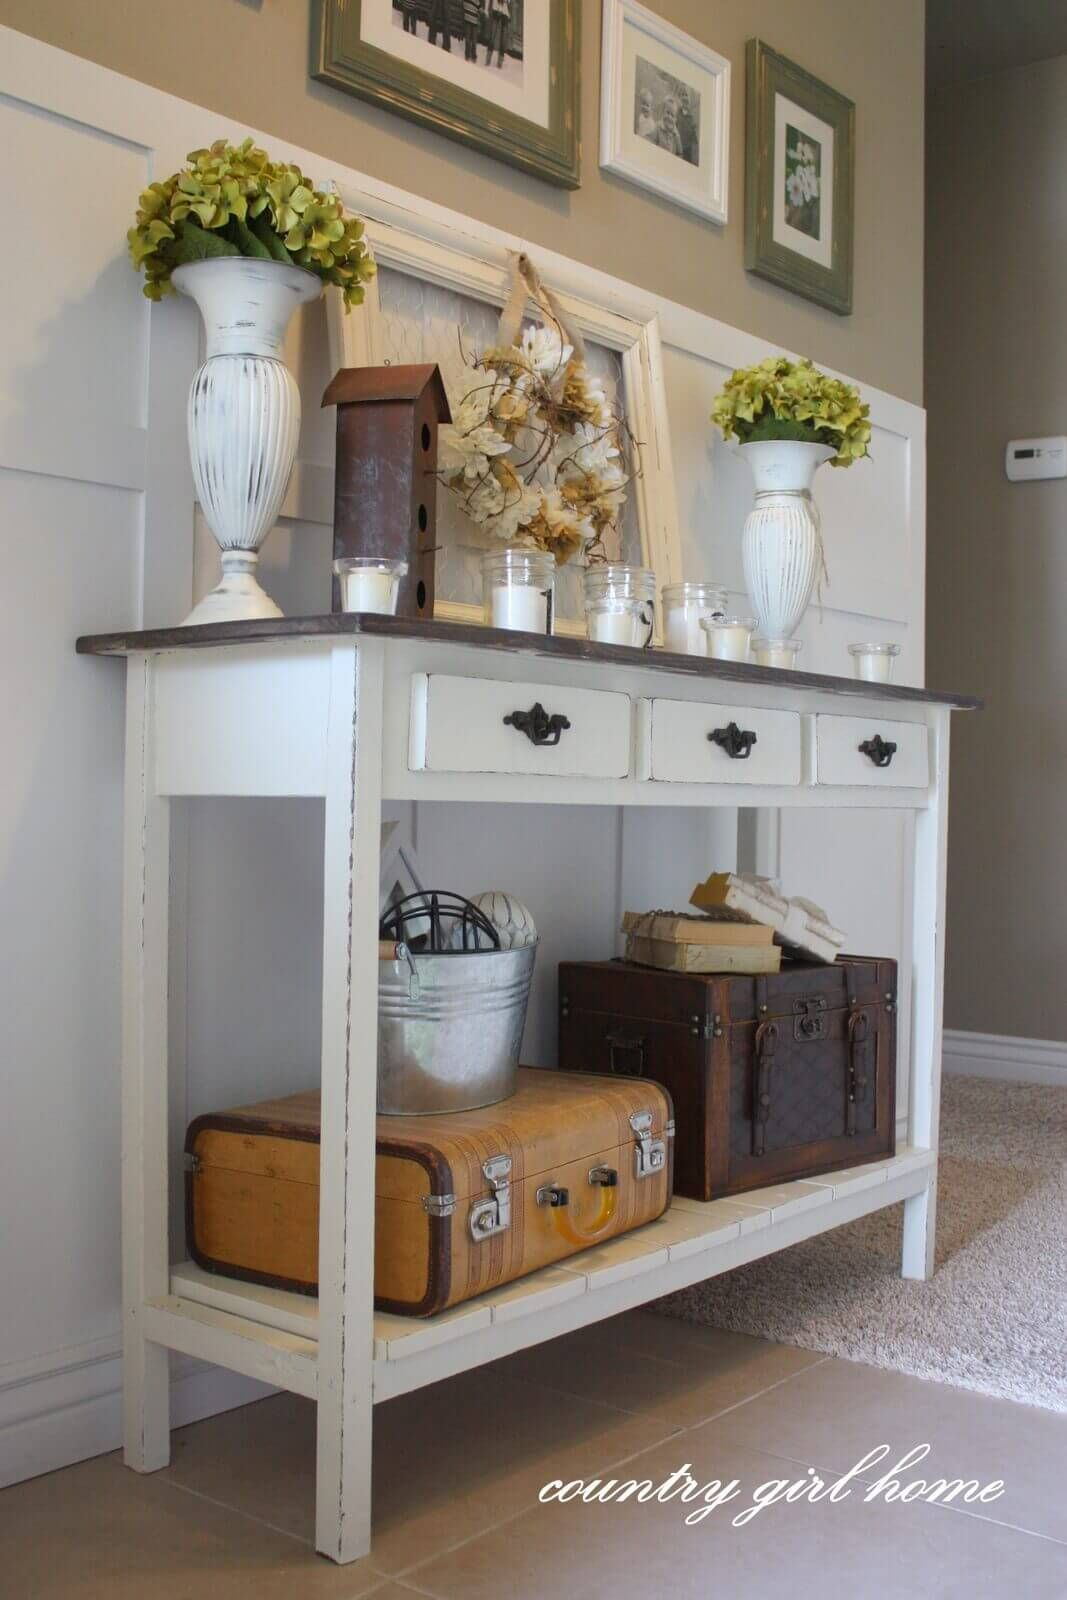 181 Entry Table Ideas 2020 For Fantastic First Impression Home